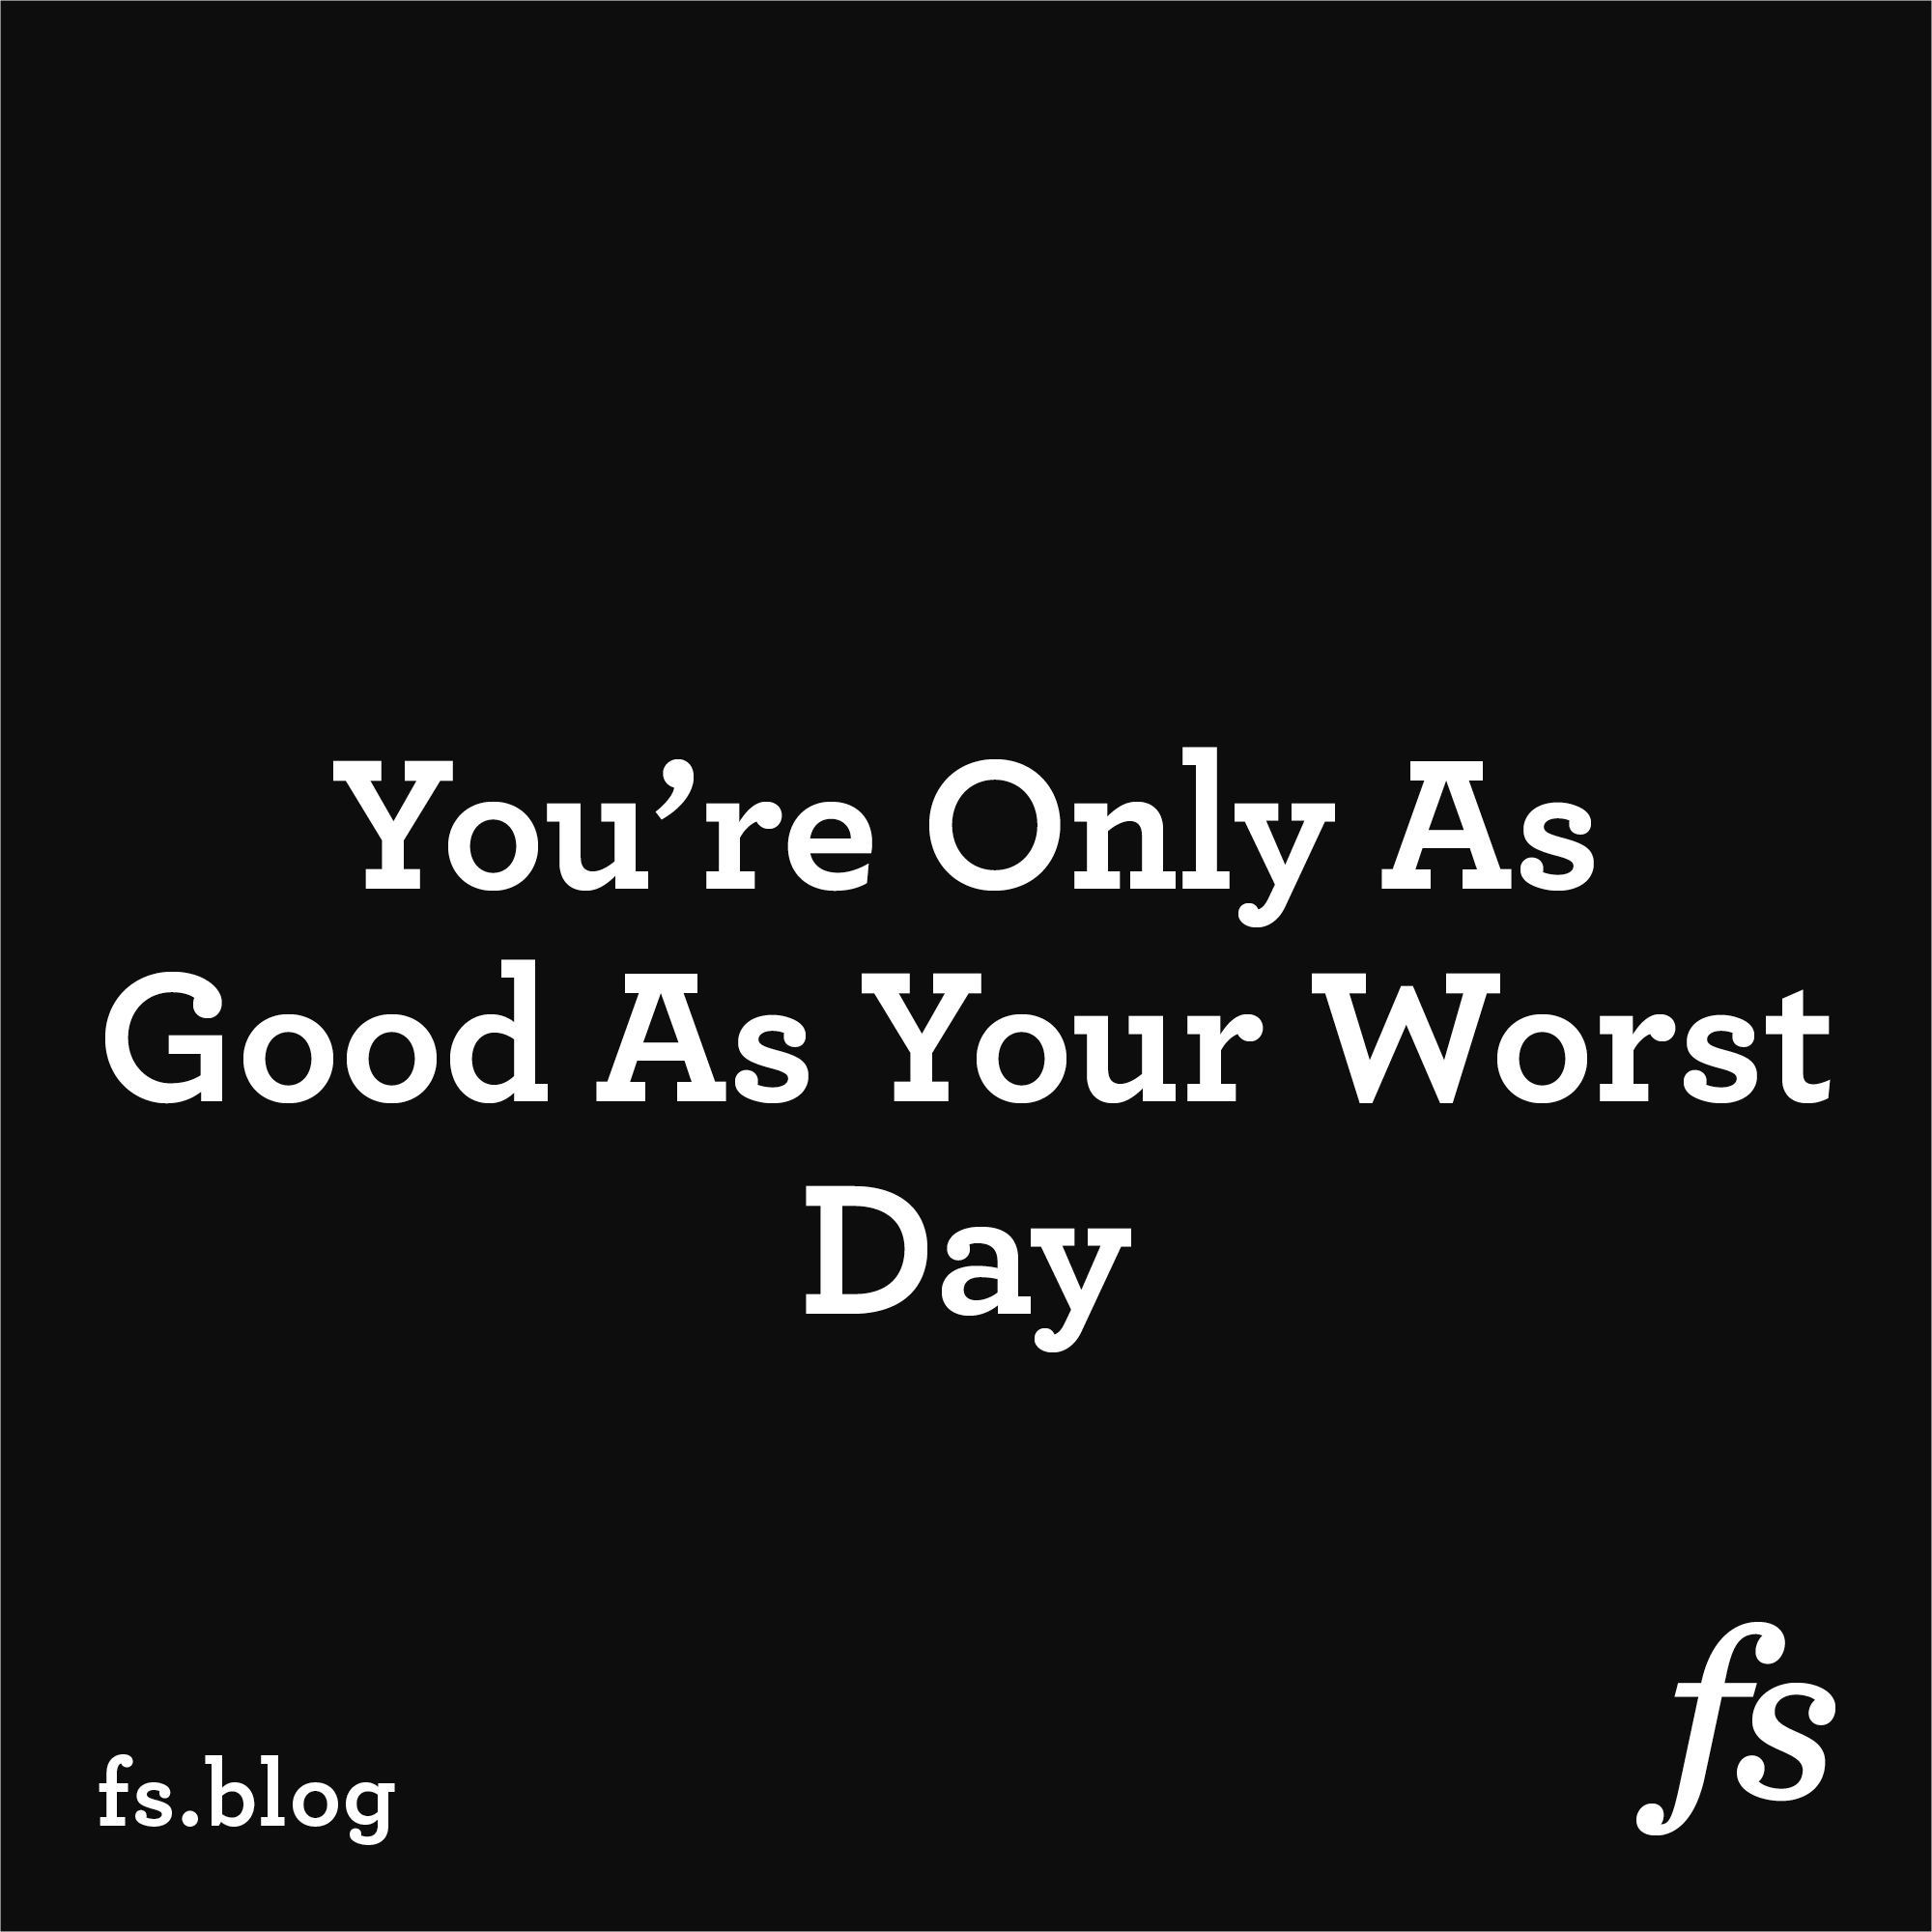 You're Only As Good As Your Worst Day